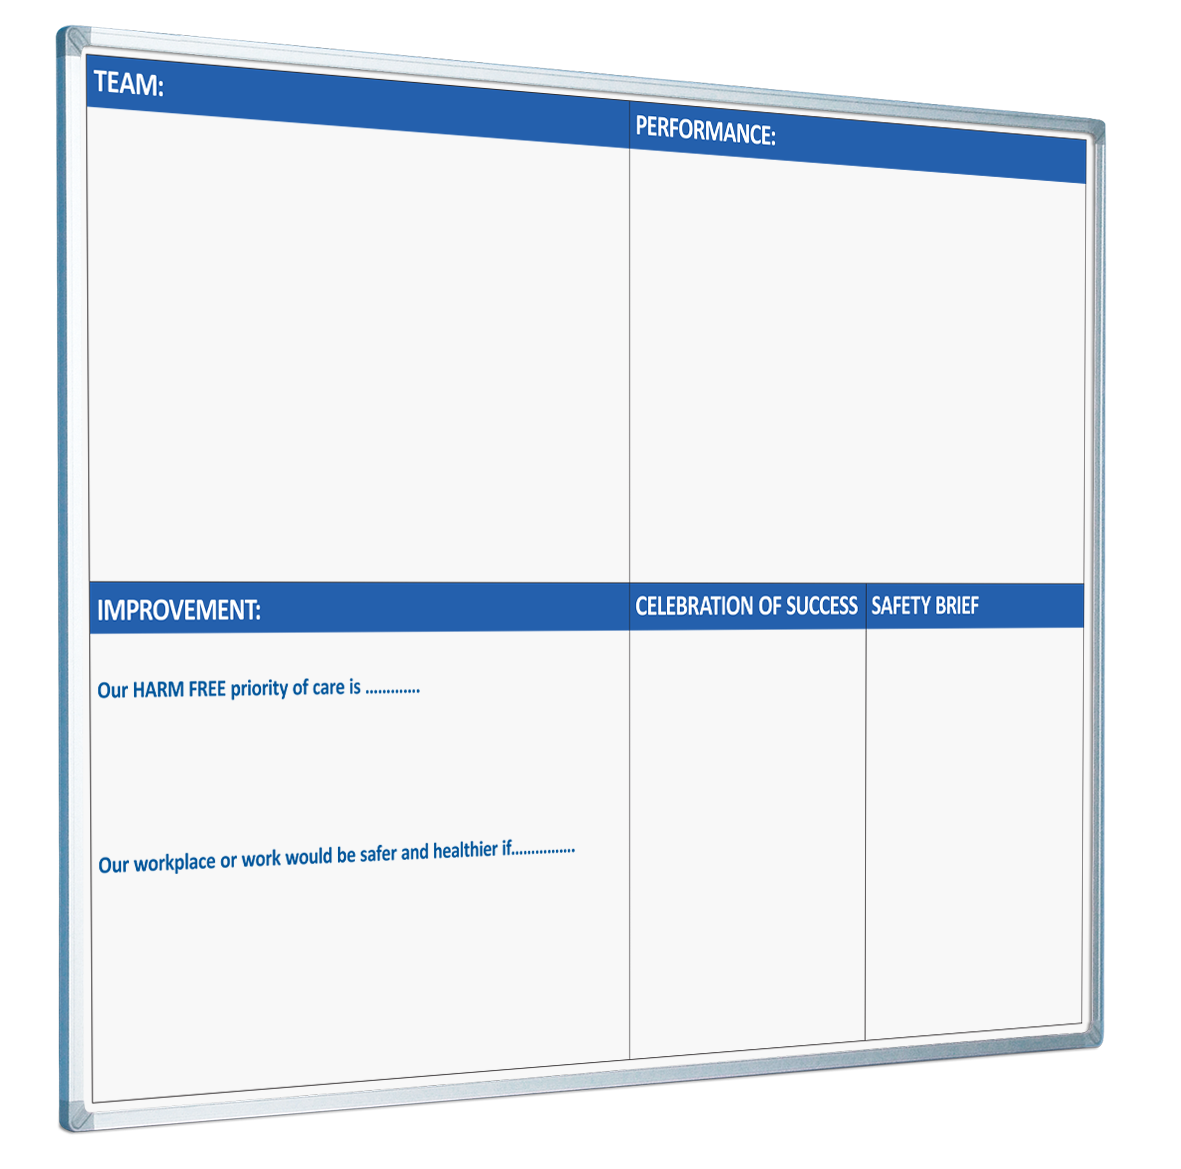 This ward performance board has been designed to provide